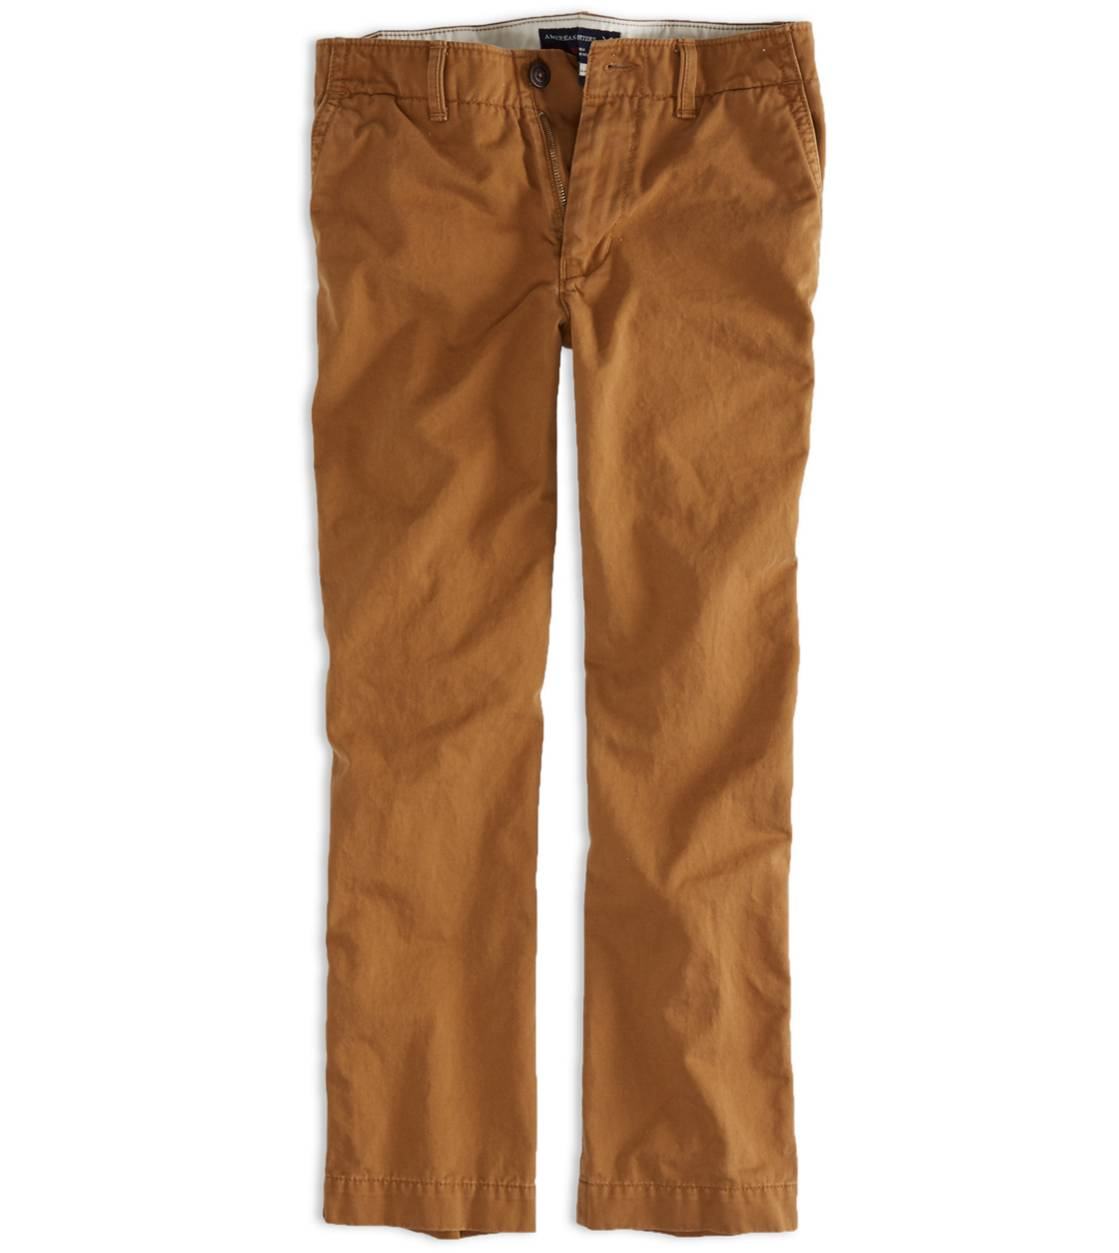 Honey AEO Factory Original Straight Khaki